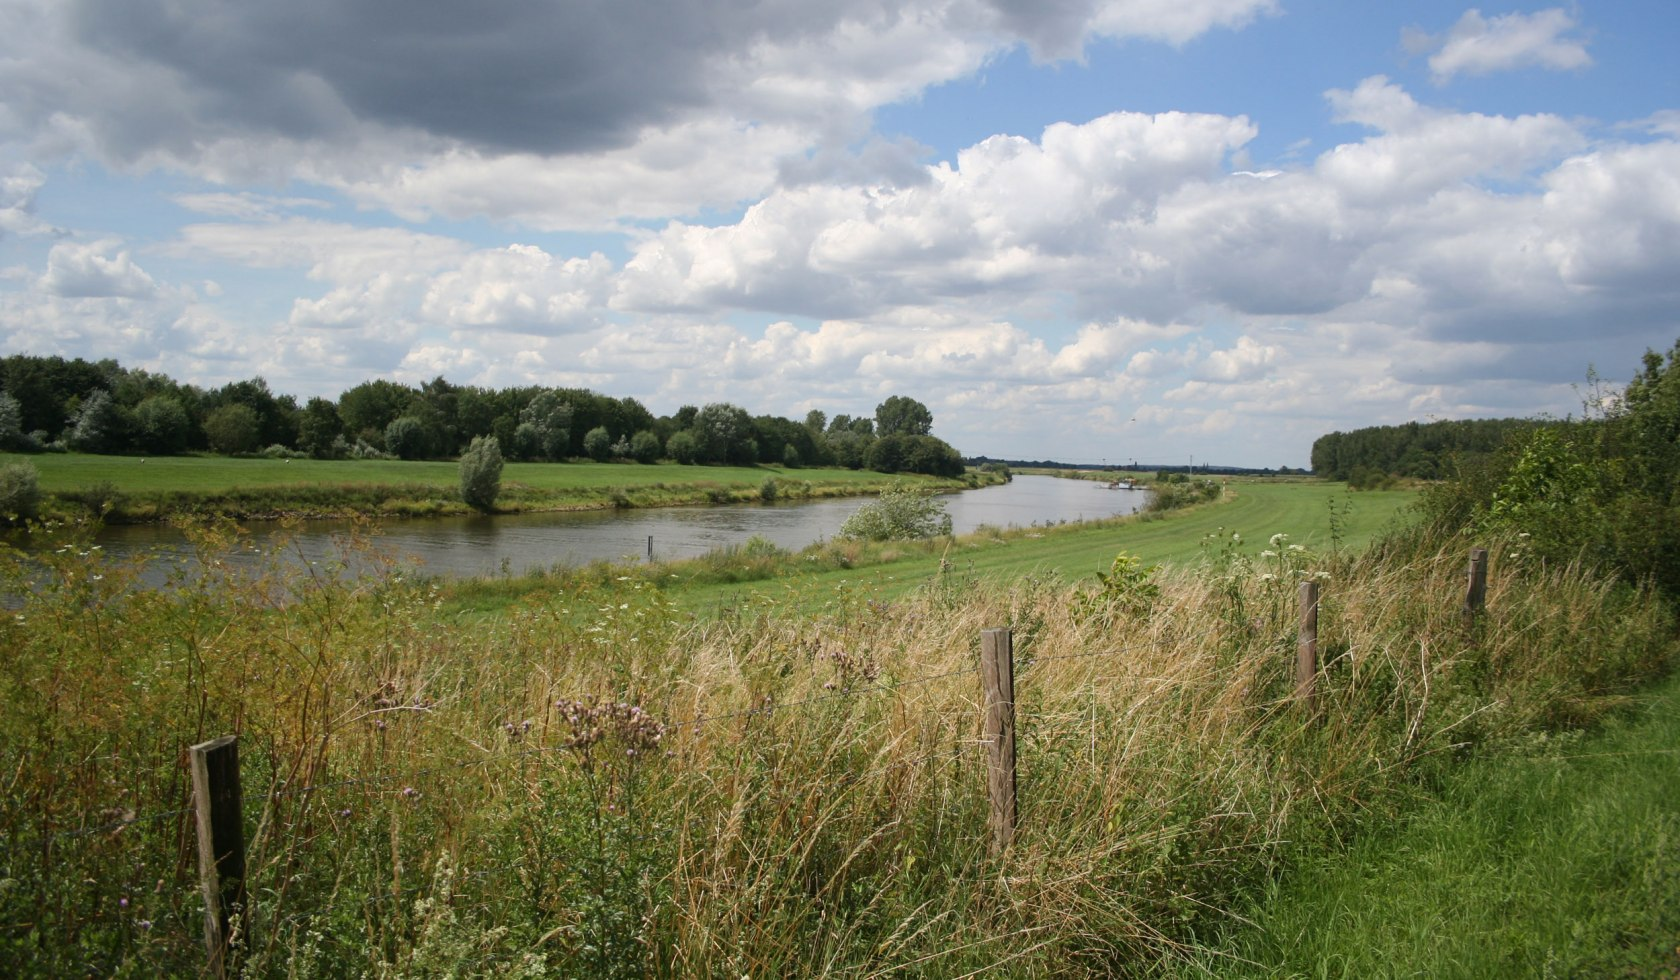 View of the Weser